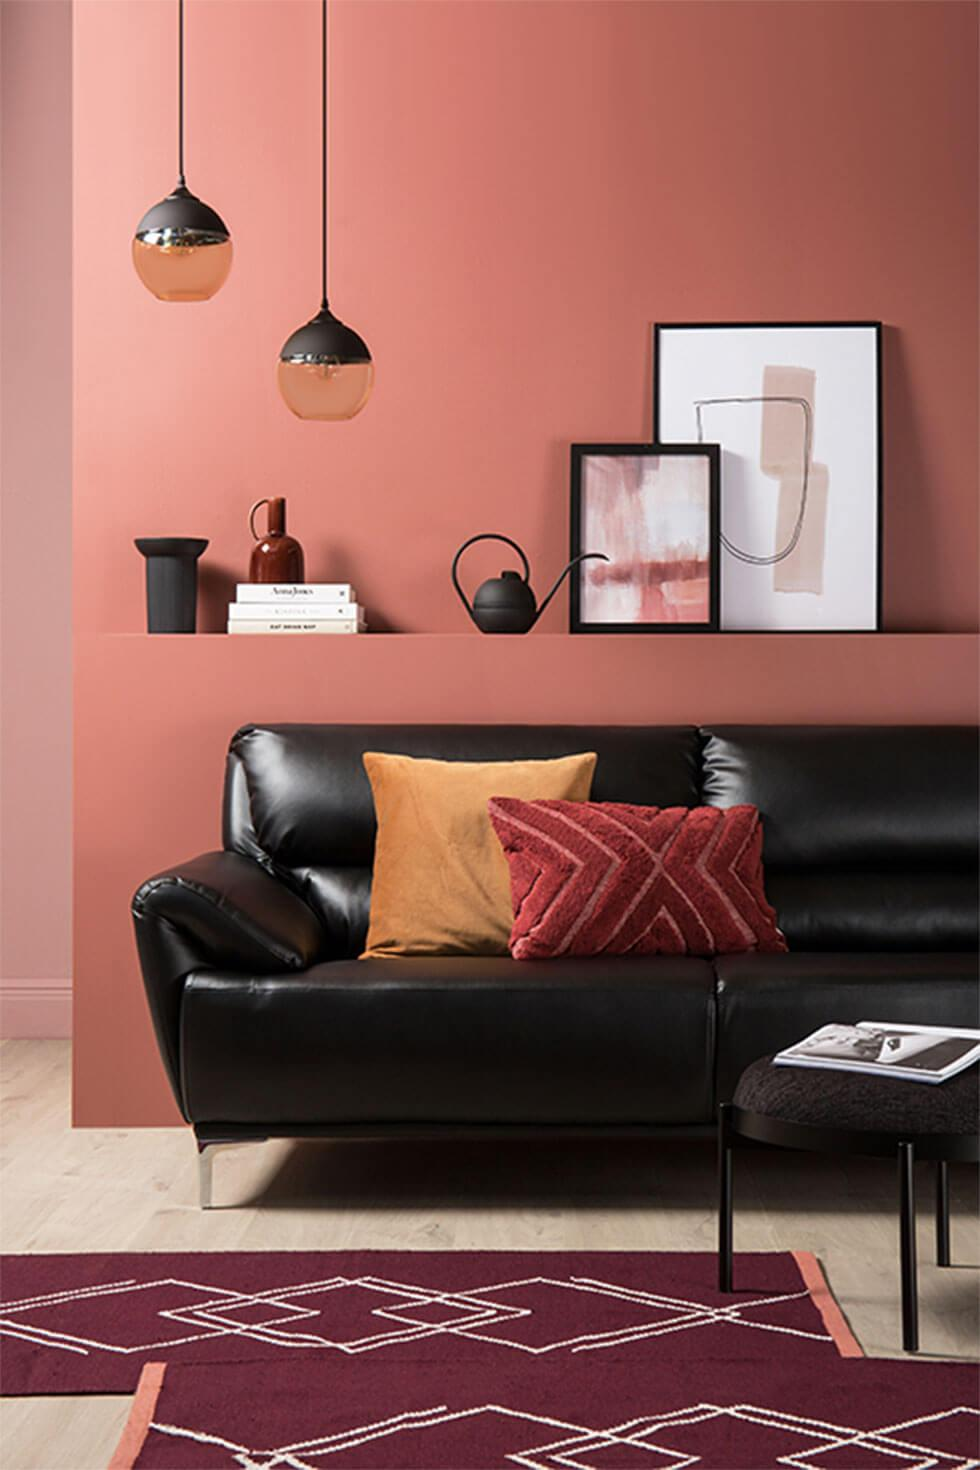 Living room with terracotta walls and black leather sofa